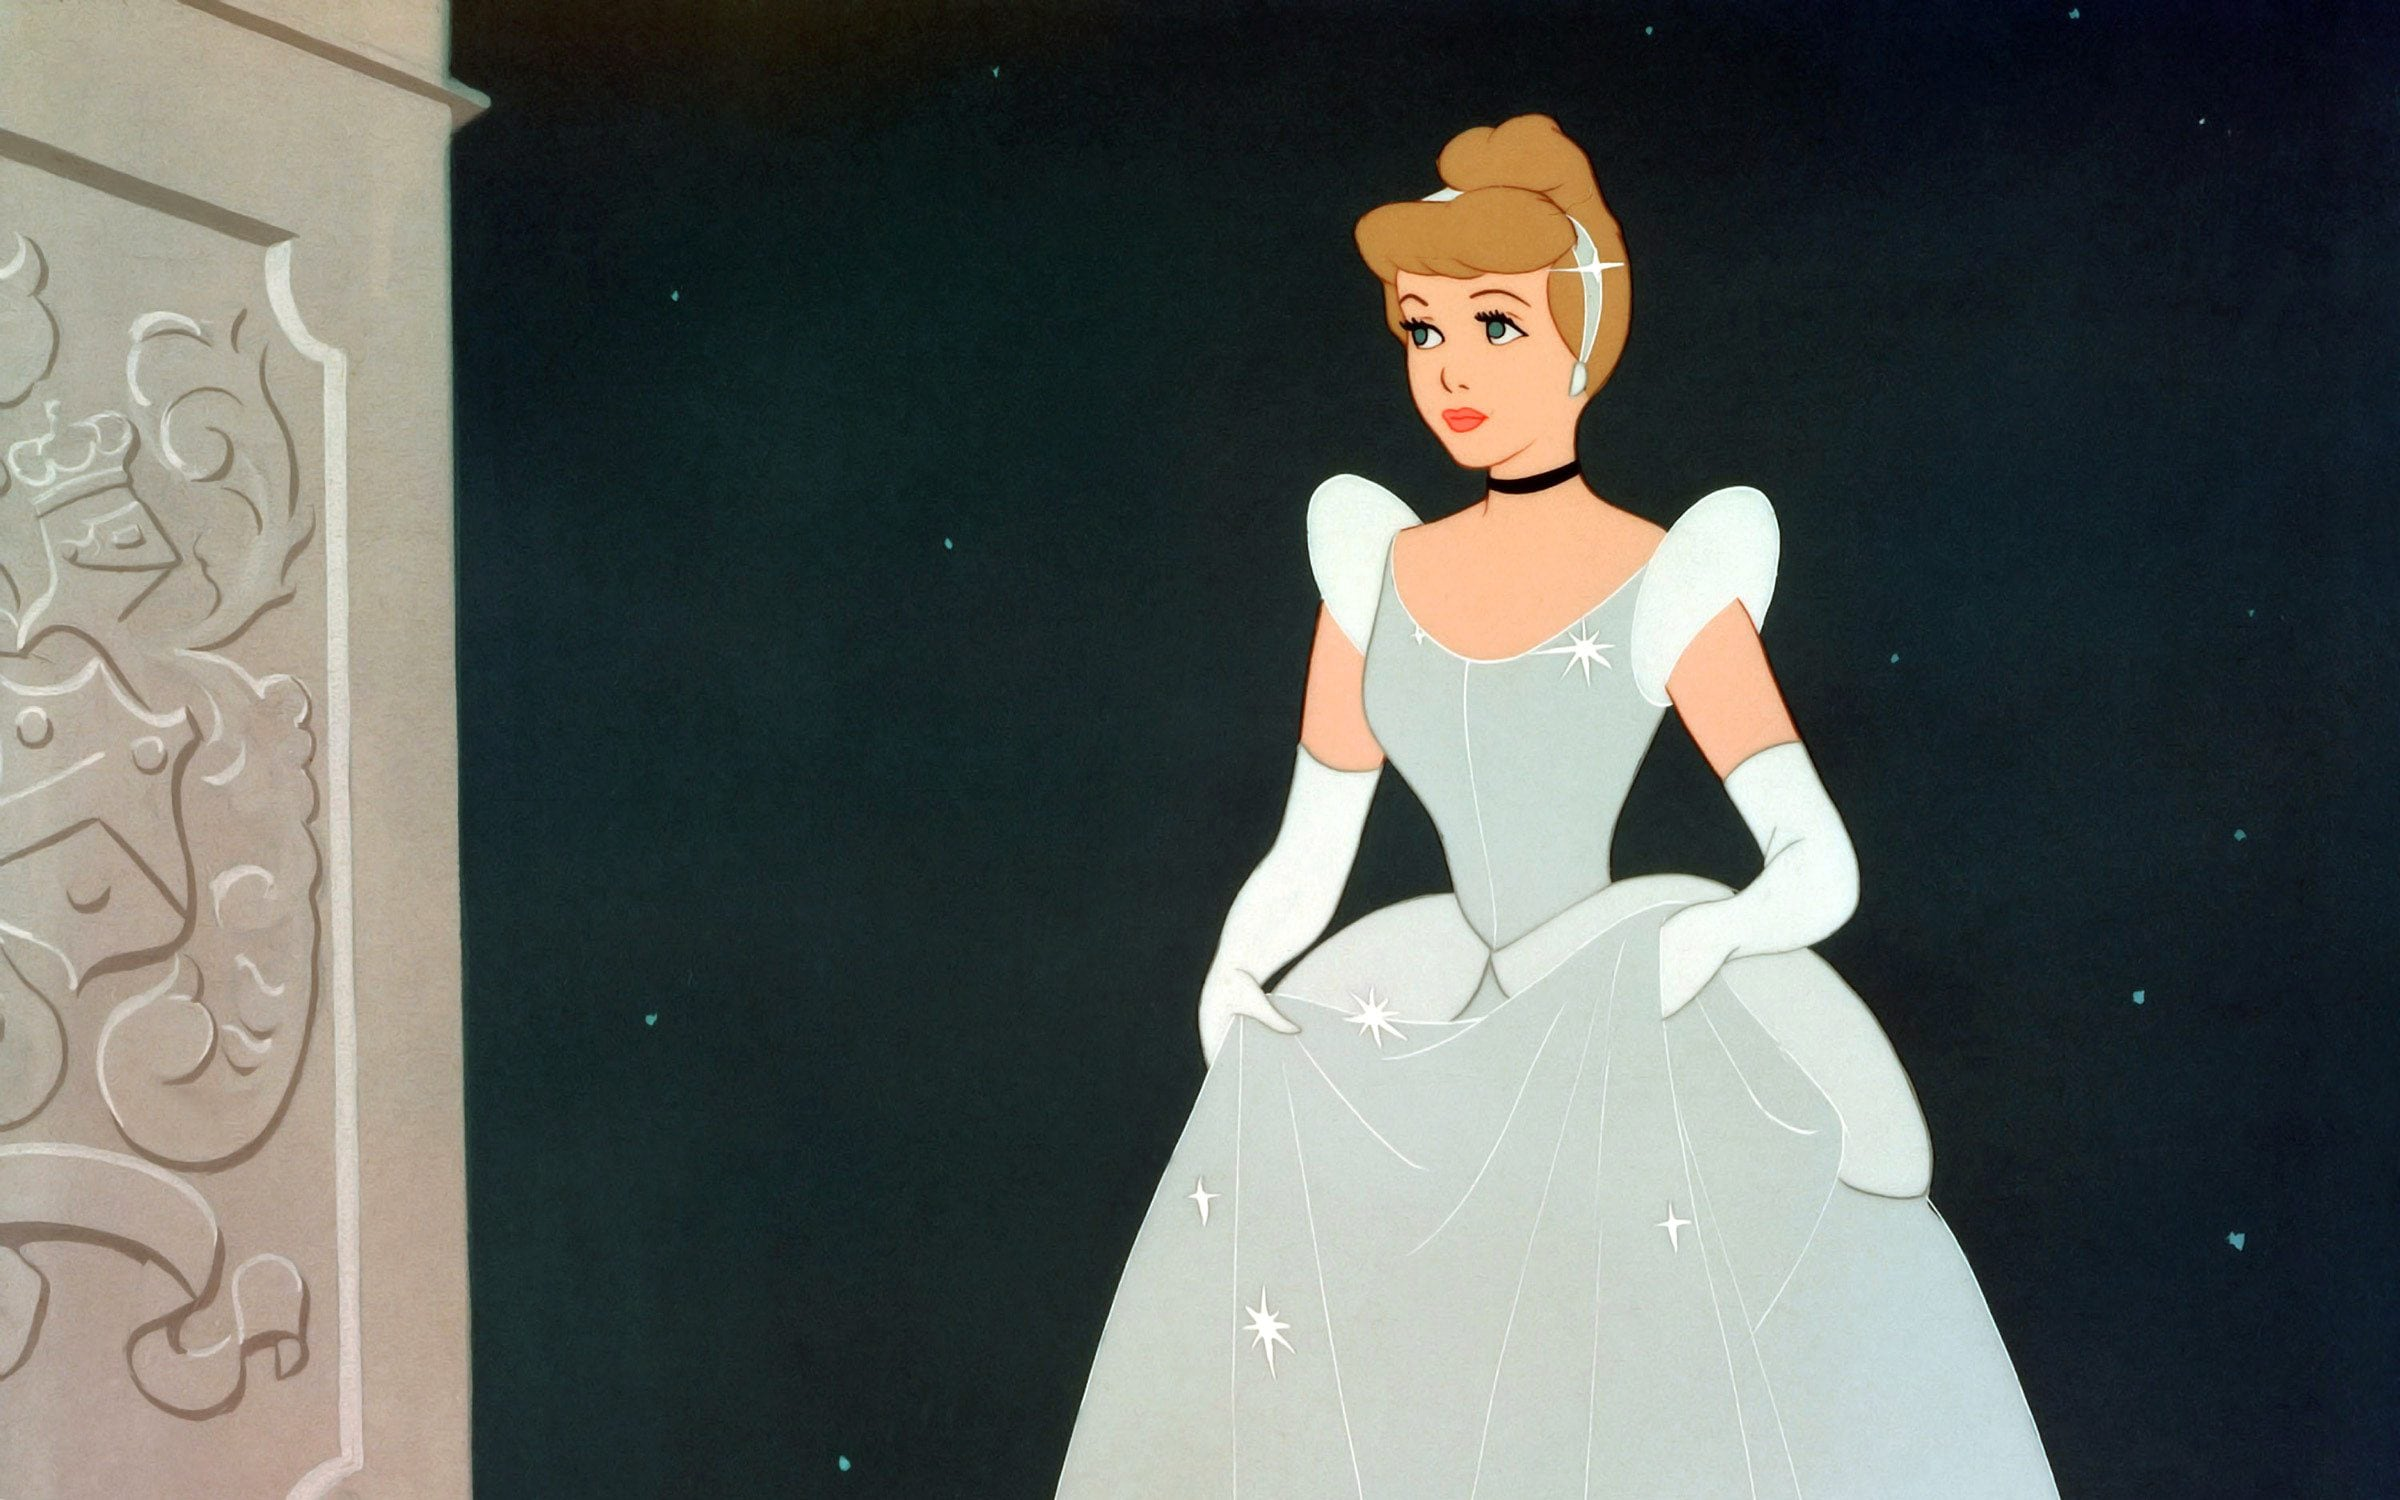 Cinderella is rescued from a life of servitude and housework by marrying the prince